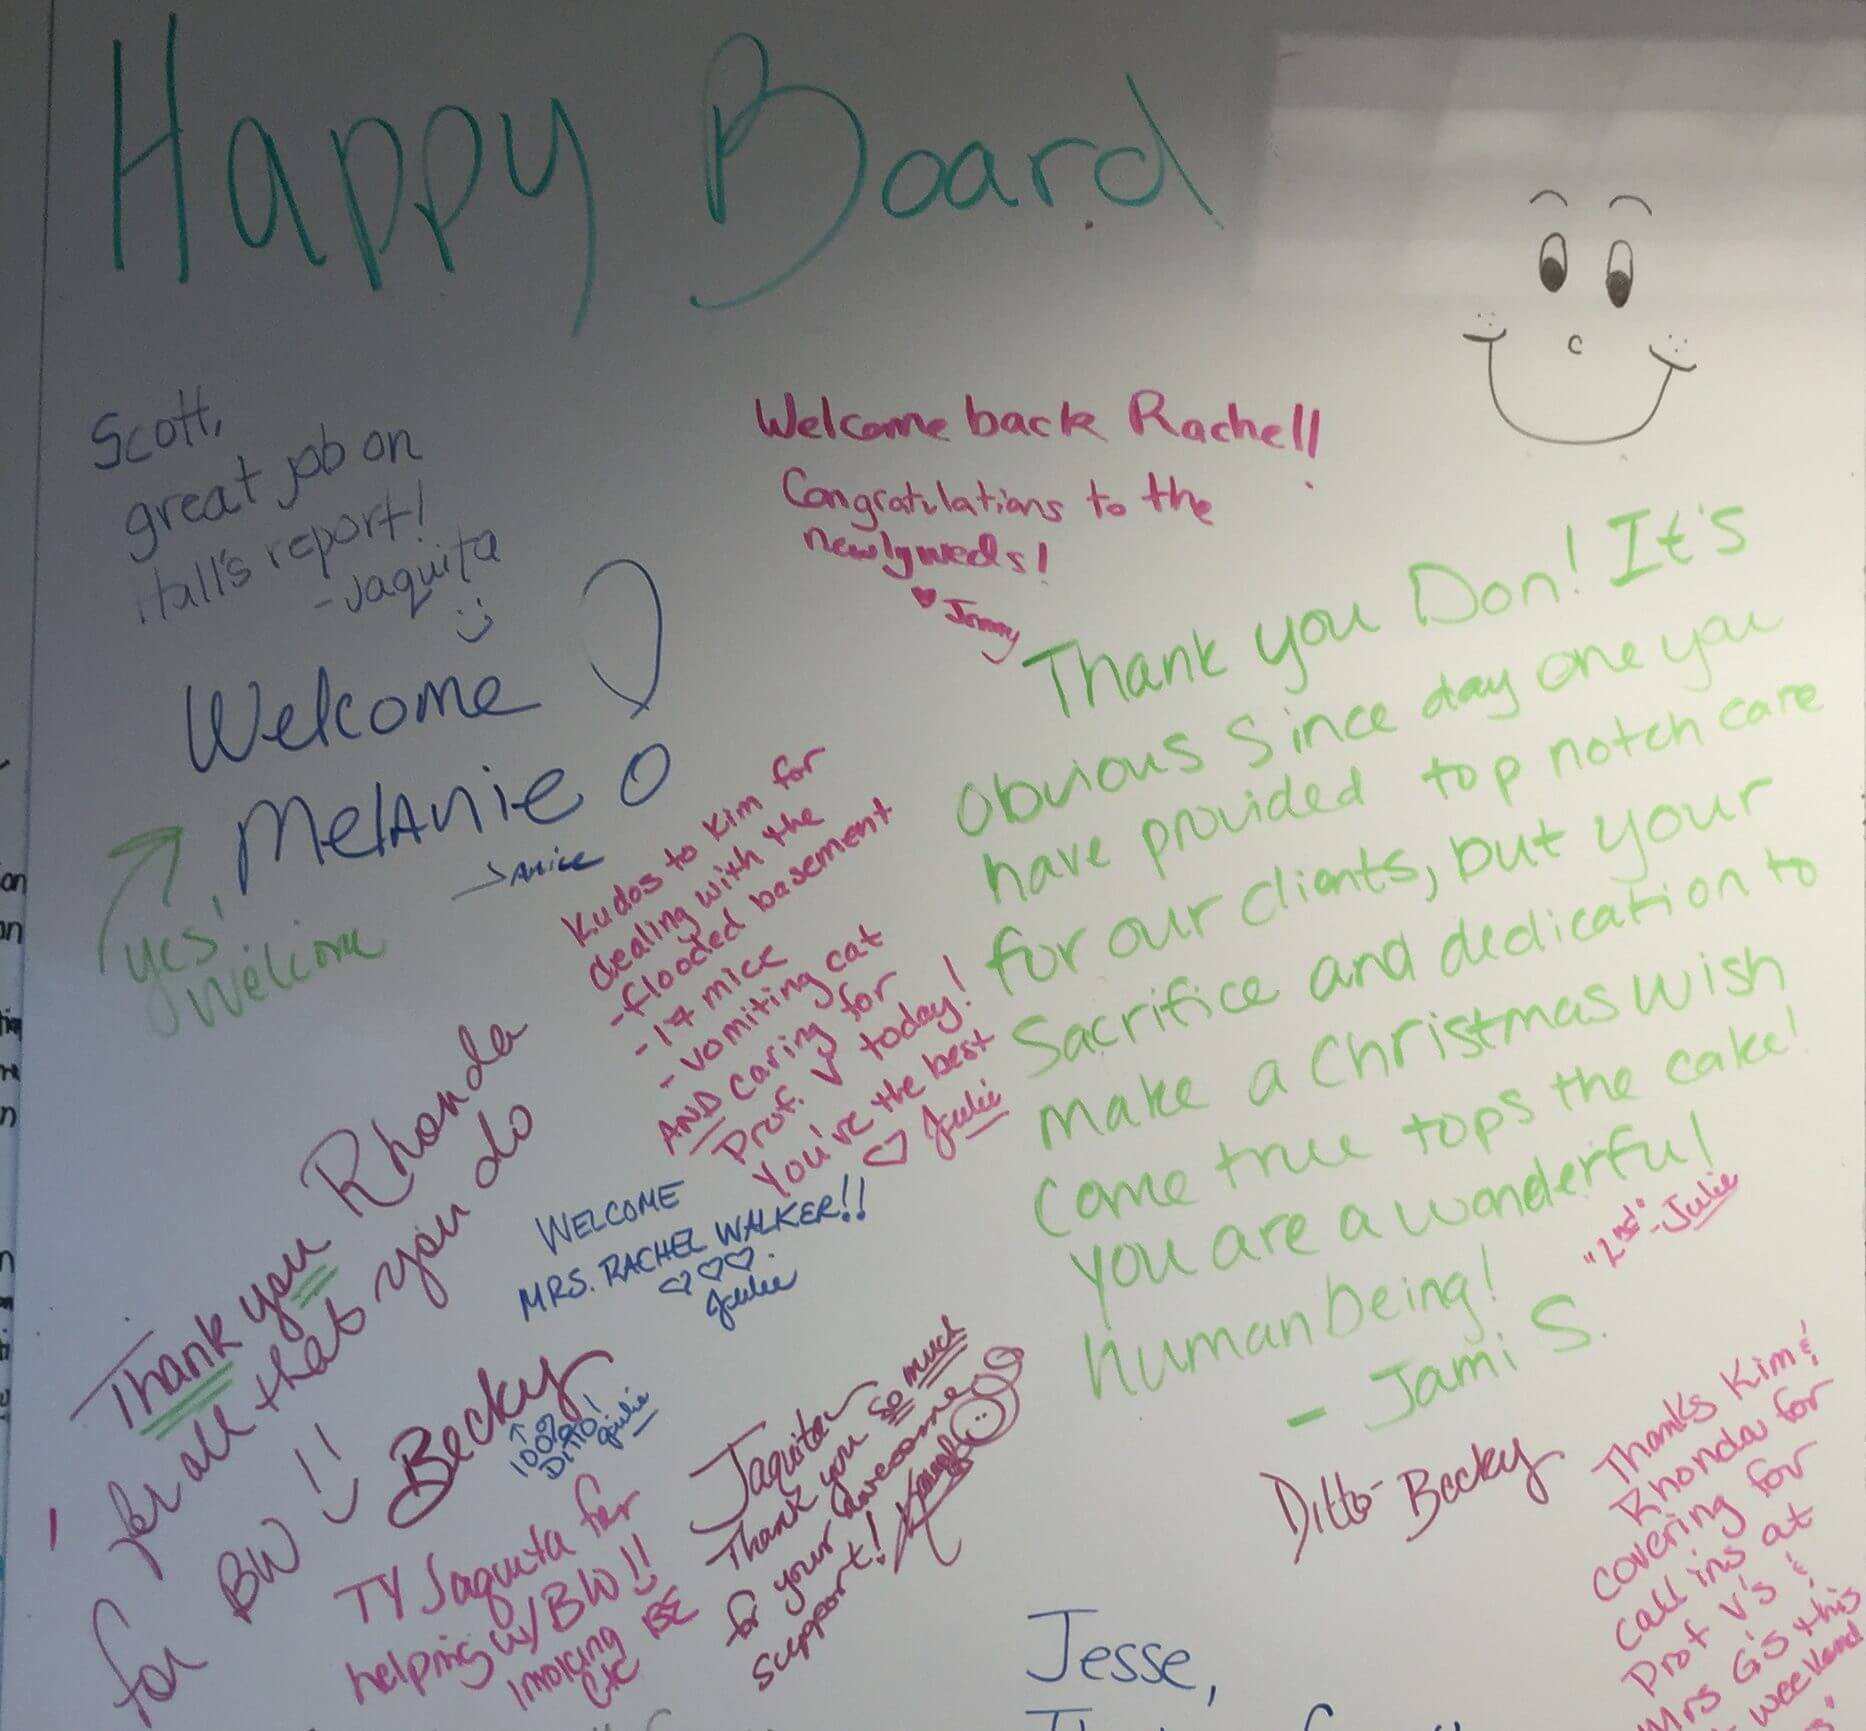 A Look into Feinberg Consulting's Happy Board